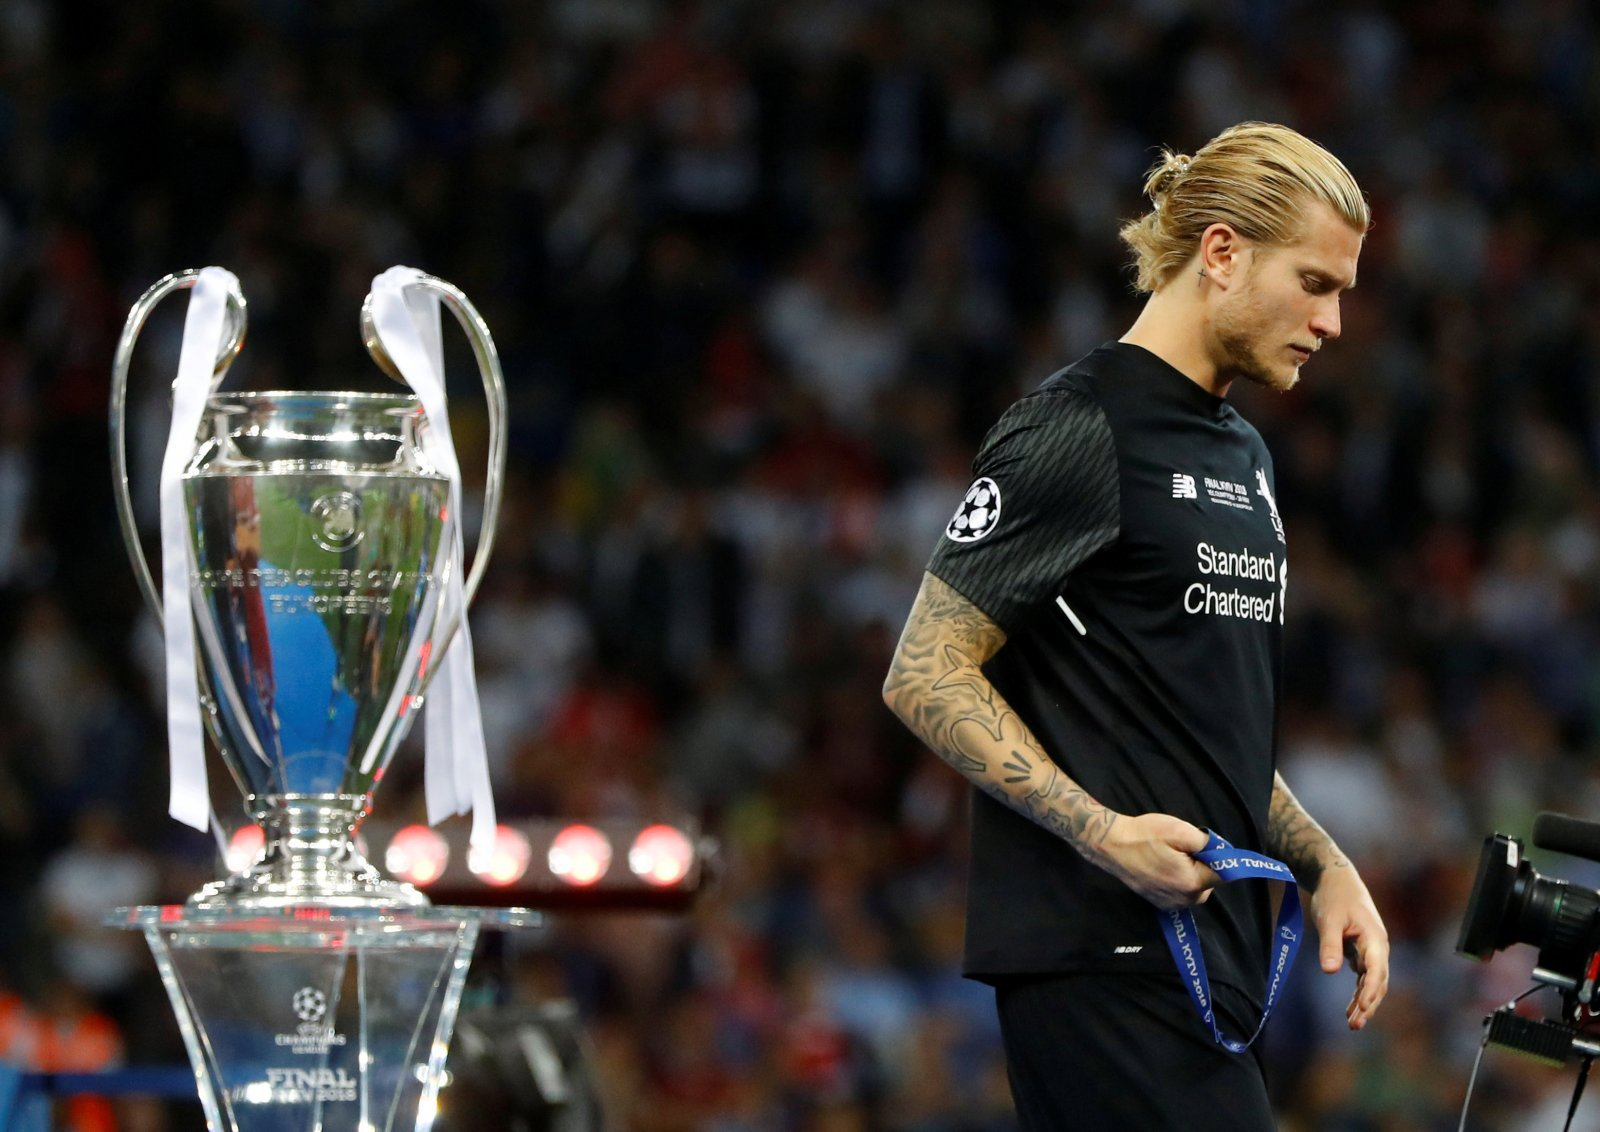 Liverpool: Loris Karius' days at Anfield seem numbered as Besiktas seek to end his loan early